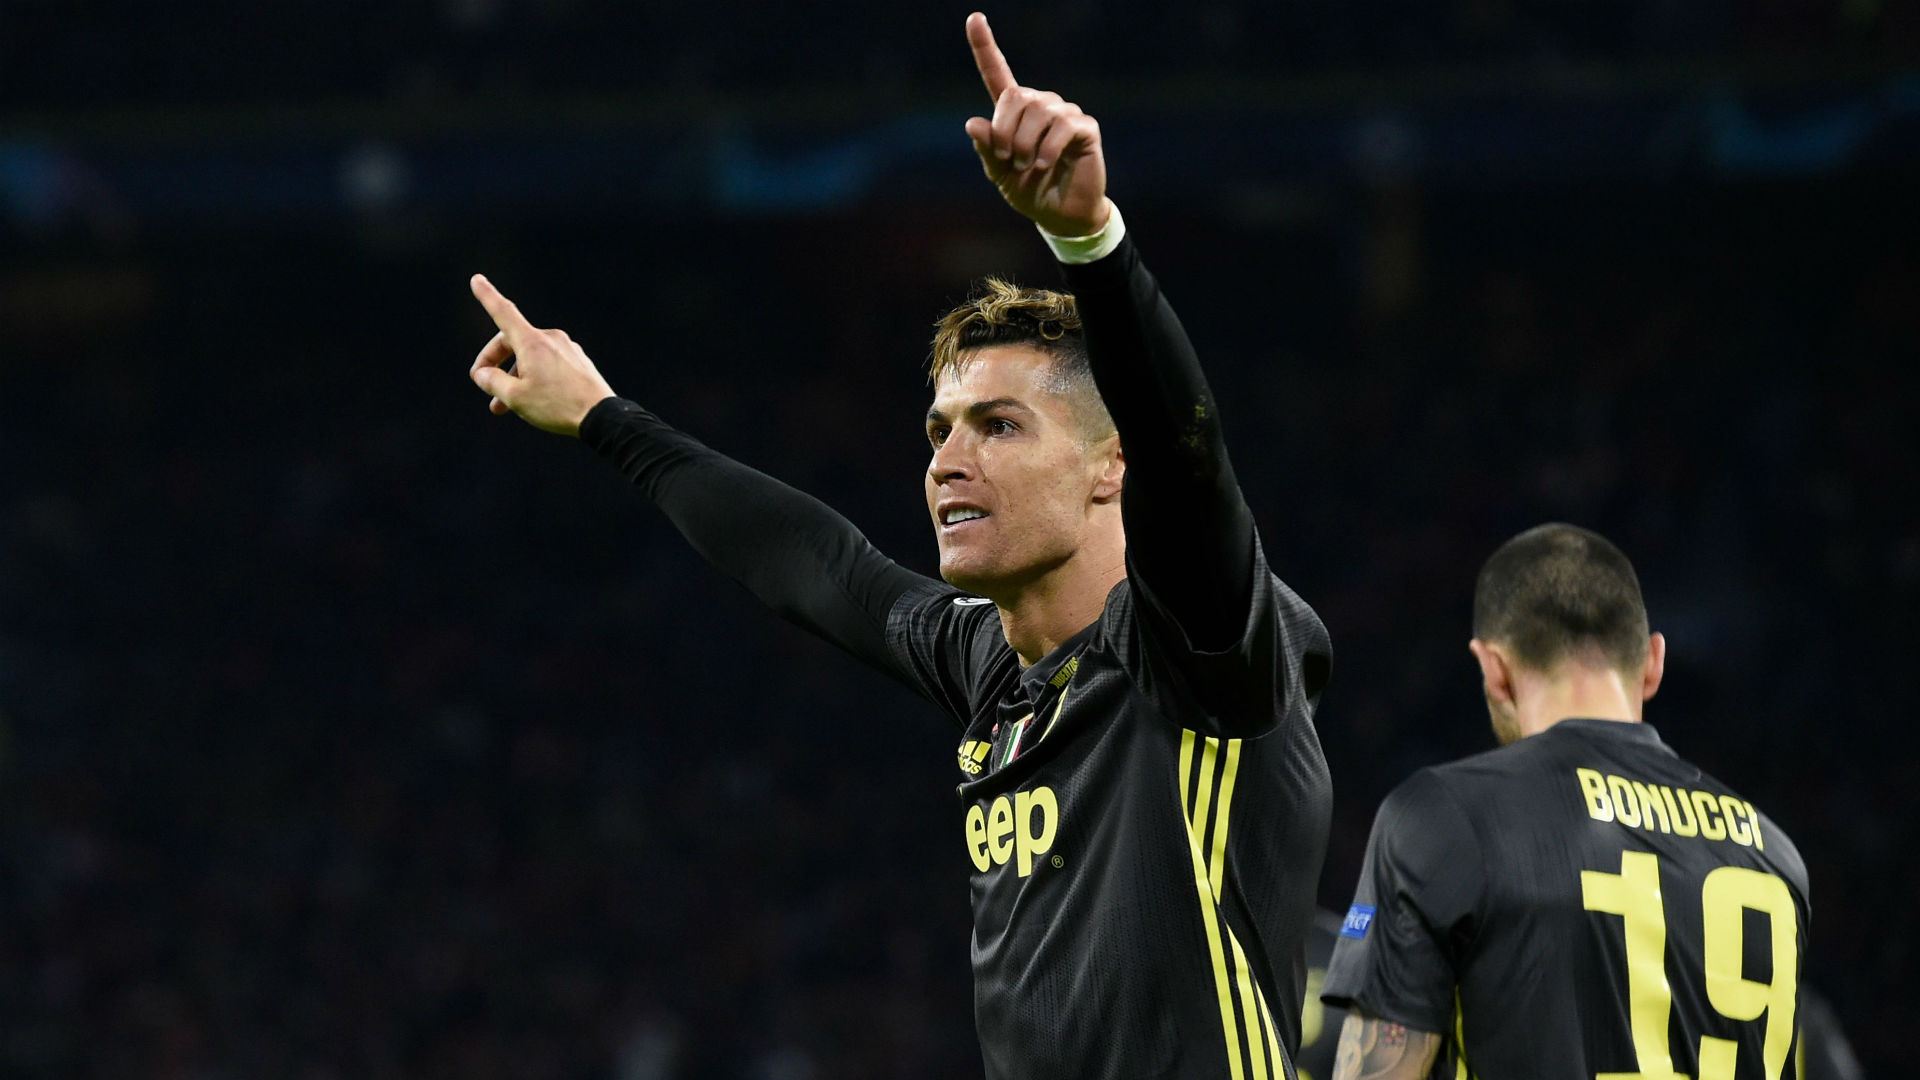 Ronaldo won't play with Juventus likely to clinch title